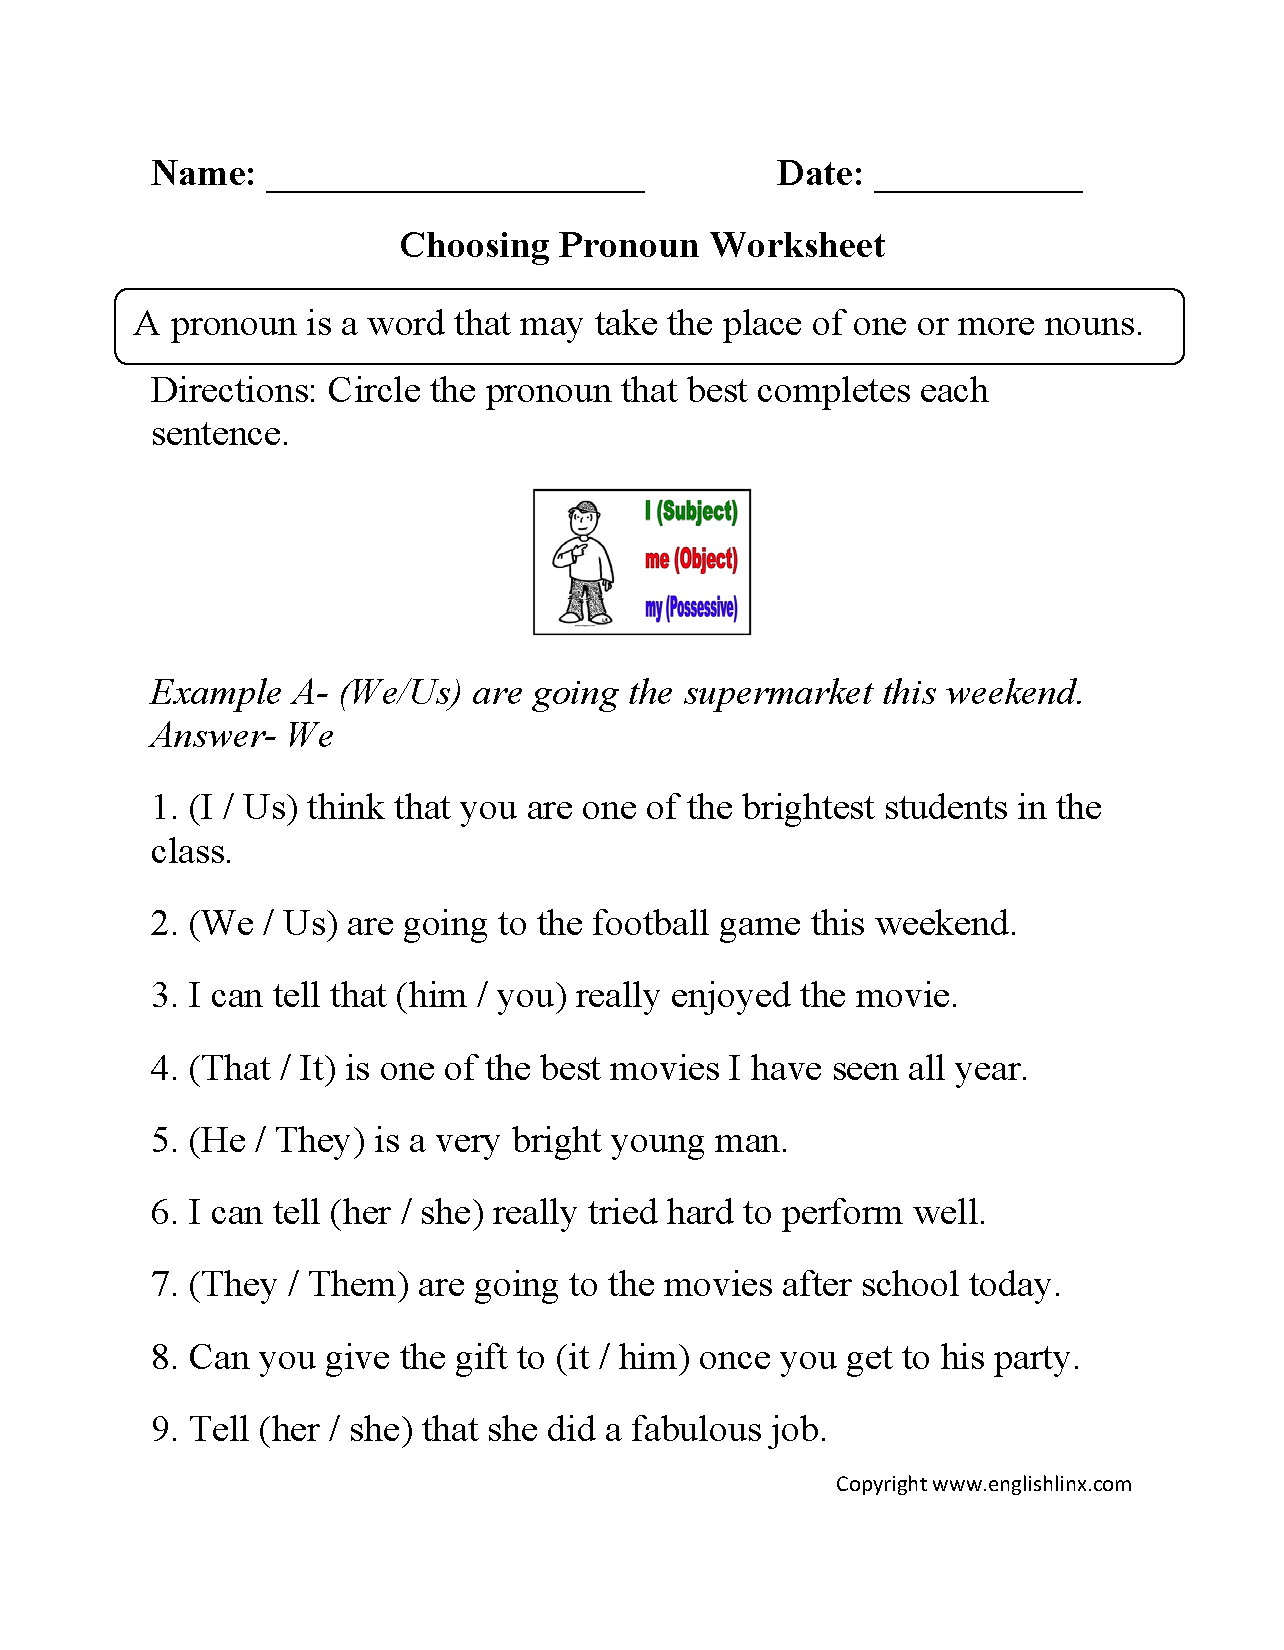 Worksheet On Demonstrative Pronouns For Grade 4